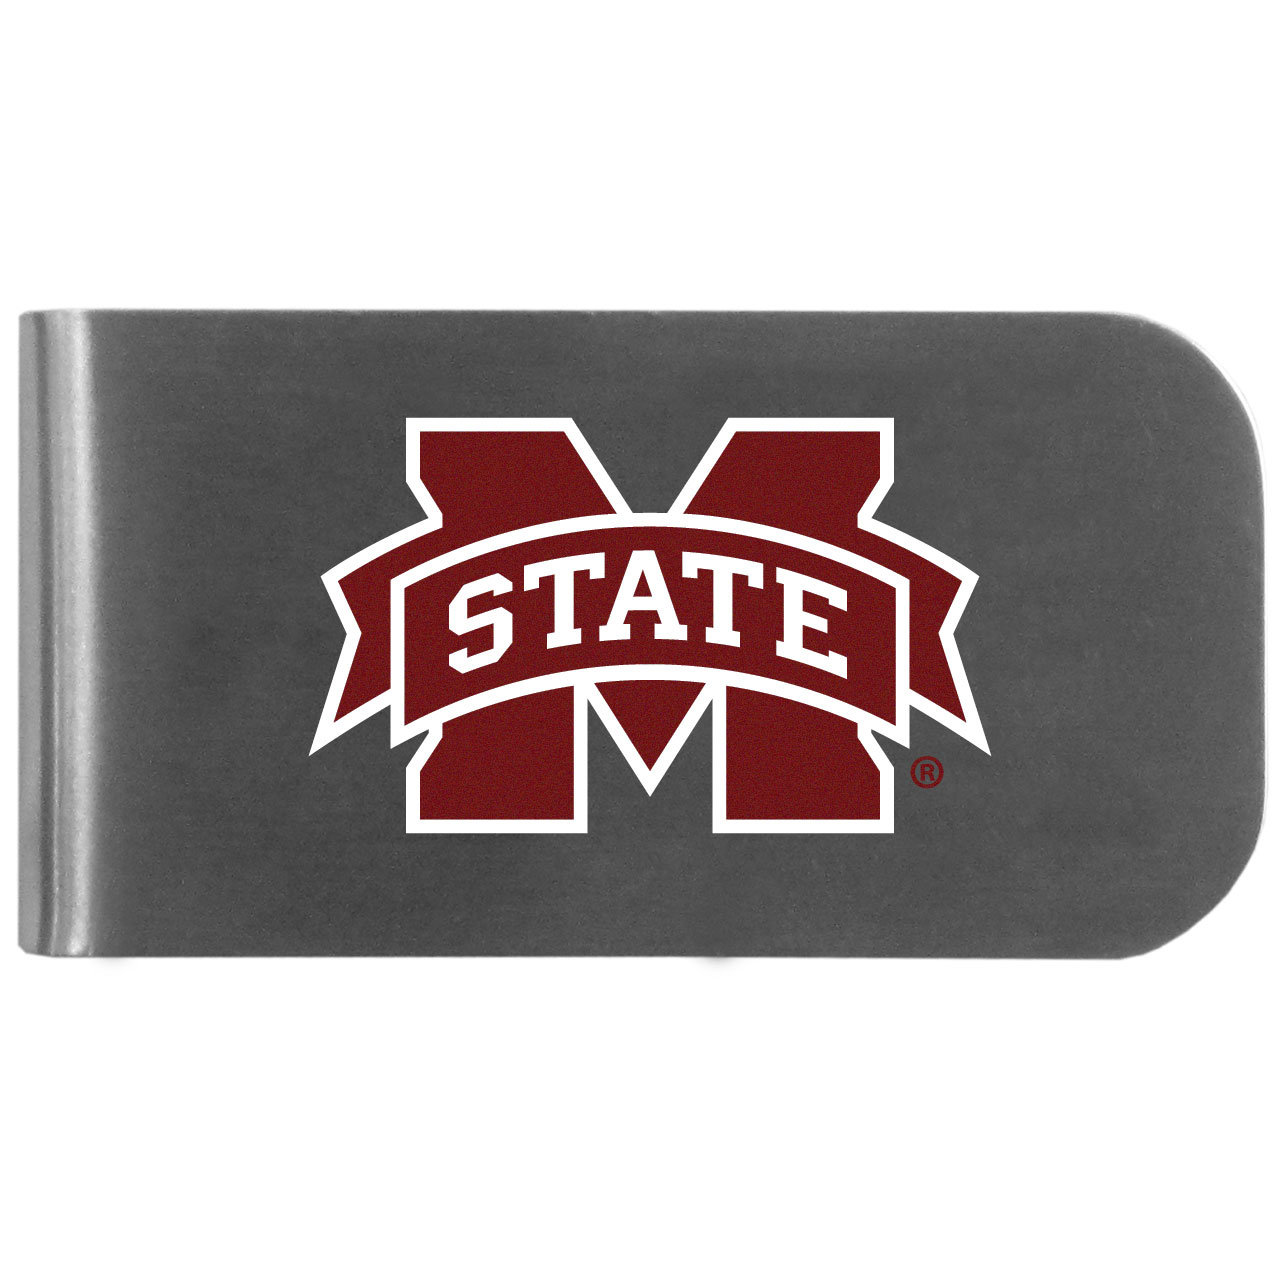 Mississippi St. Bulldogs Logo Bottle Opener Money Clip - This unique money clip features a classic, brushed-metal finish with a handy bottle opener feature on the back. The clip has the Mississippi St. Bulldogs logo expertly printed on the front of the clip.